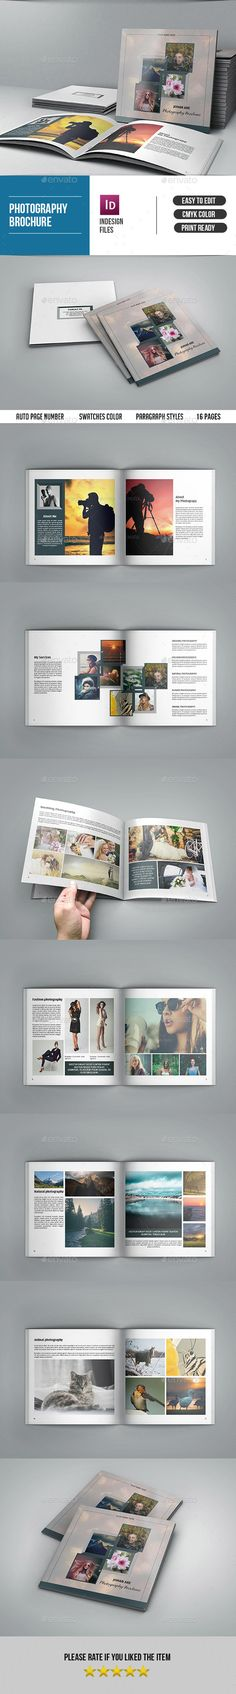 Square Photography Brochure-V90 - Catalogs #Brochures Download here: https://graphicriver.net/item/square-photography-brochurev90/19495290?ref=alena994